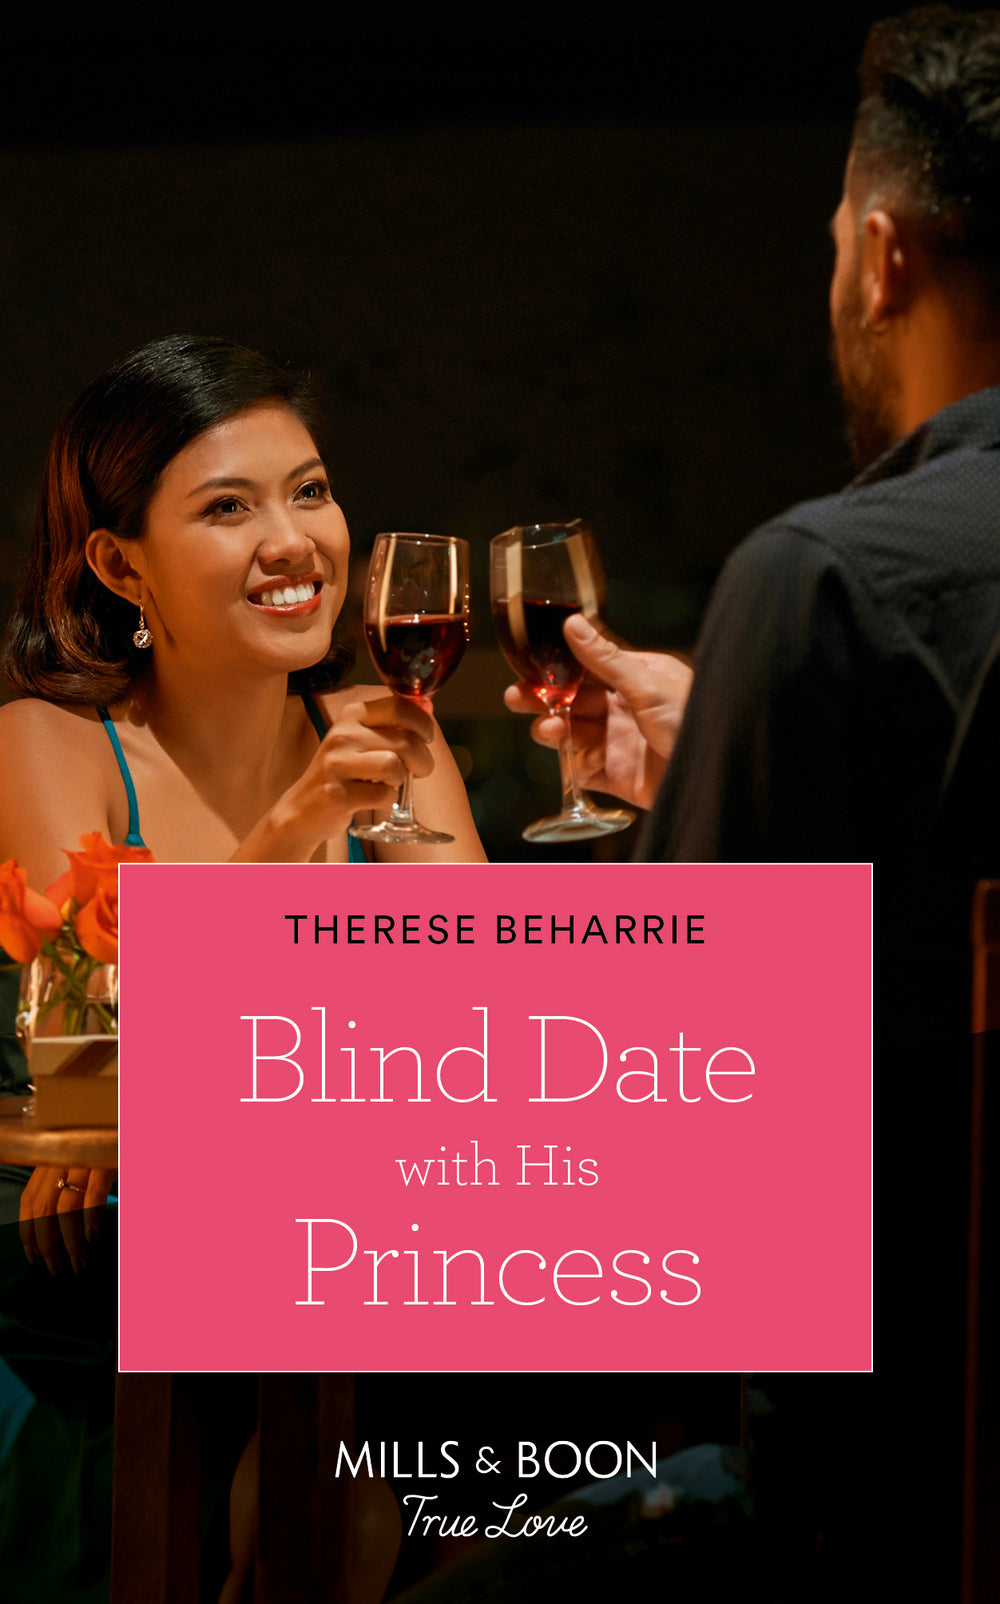 Blind Date with His Princess - Chapter 1